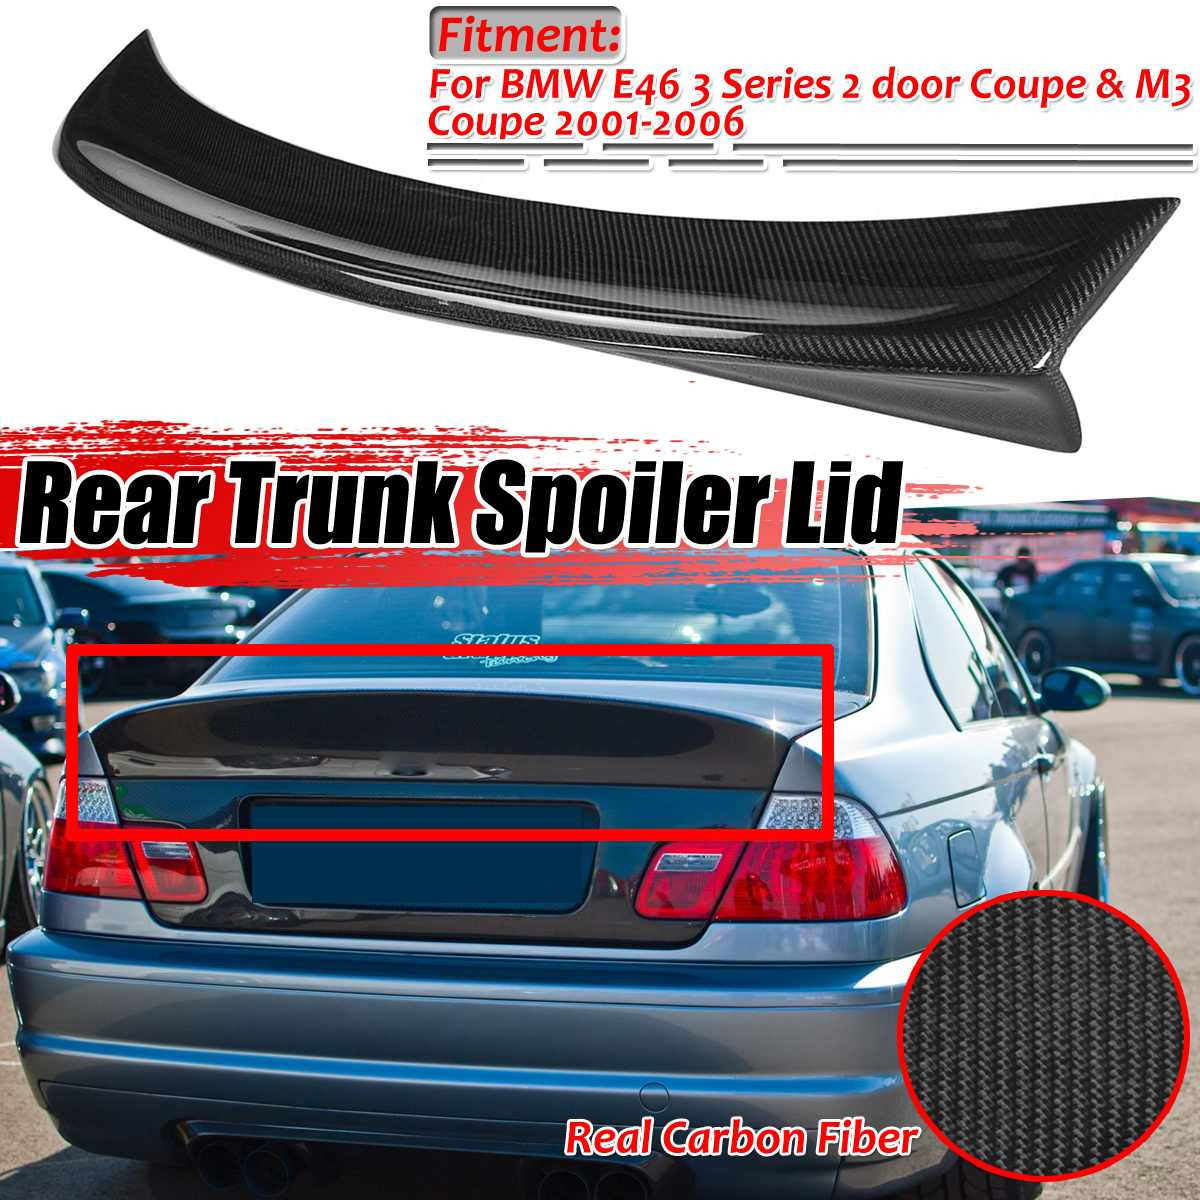 Carbon Fiber Rear Spoiler Tail Boot Wing Fit for BMW E46 M3 Coupe 2000-2006